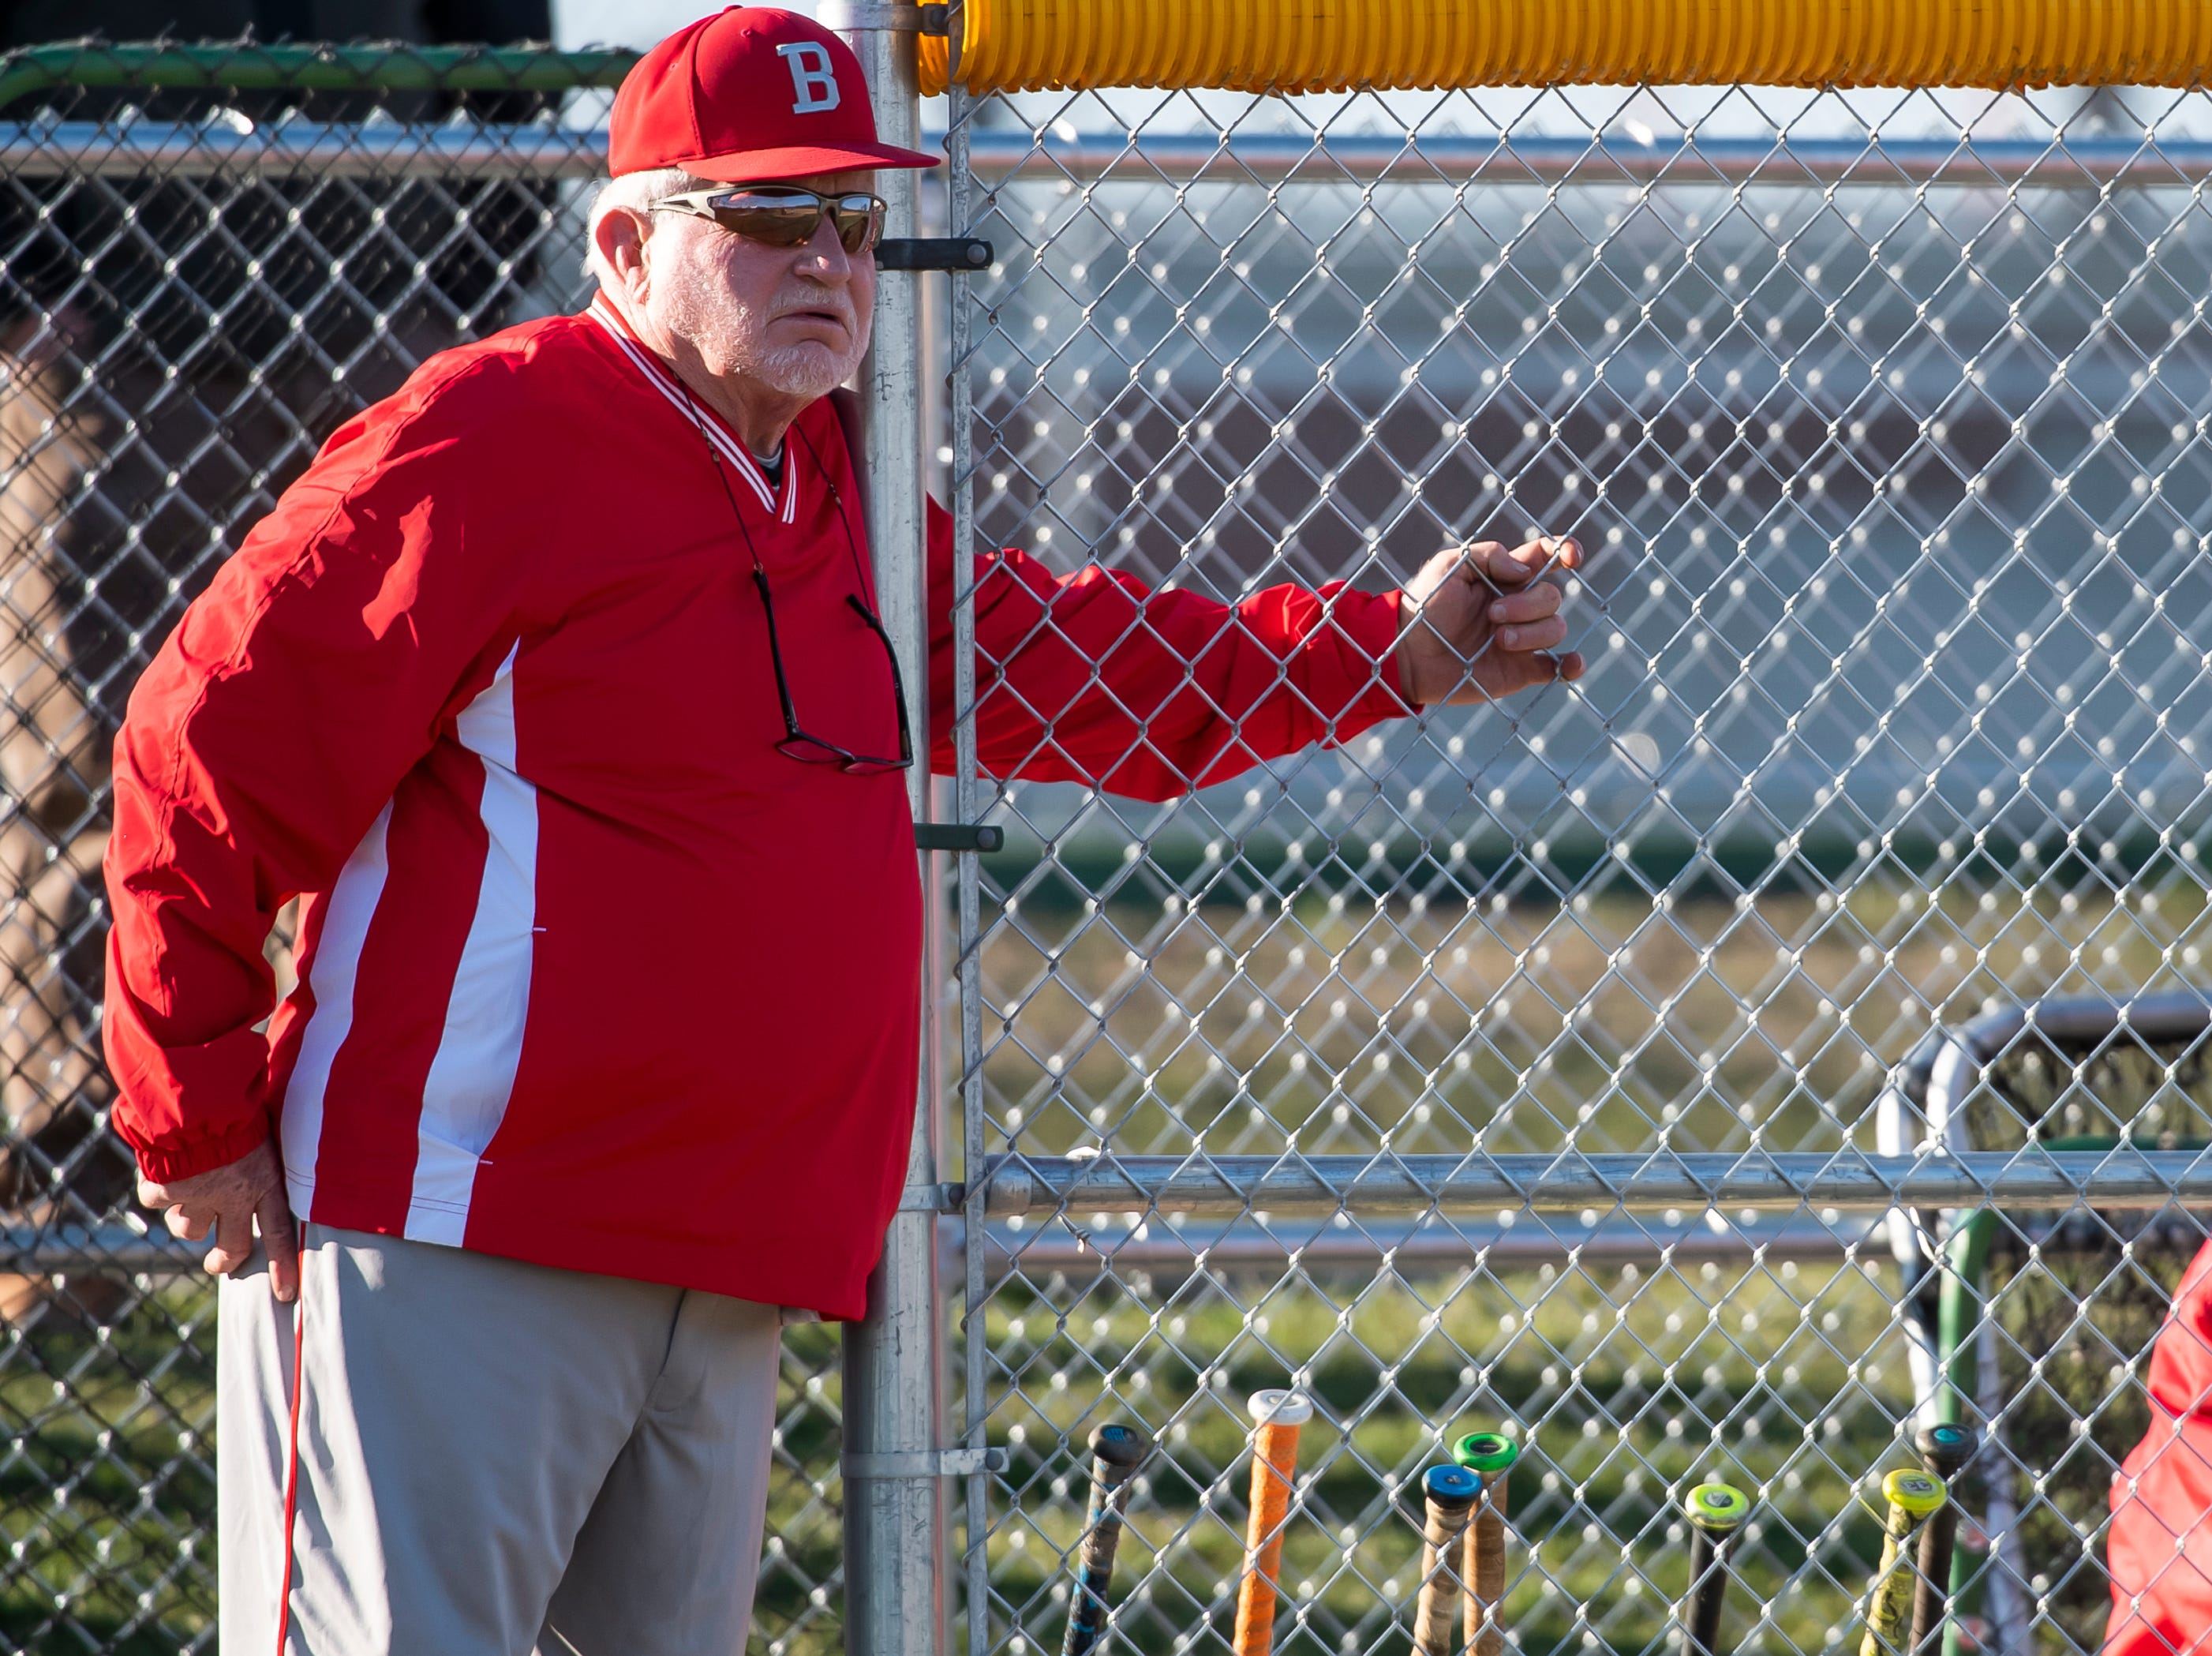 Bermudian Springs baseball head coach Bruce Reinert watches during a YAIAA baseball game against West York on Wednesday, April 3, 2019. The Eagles fell 14-11.